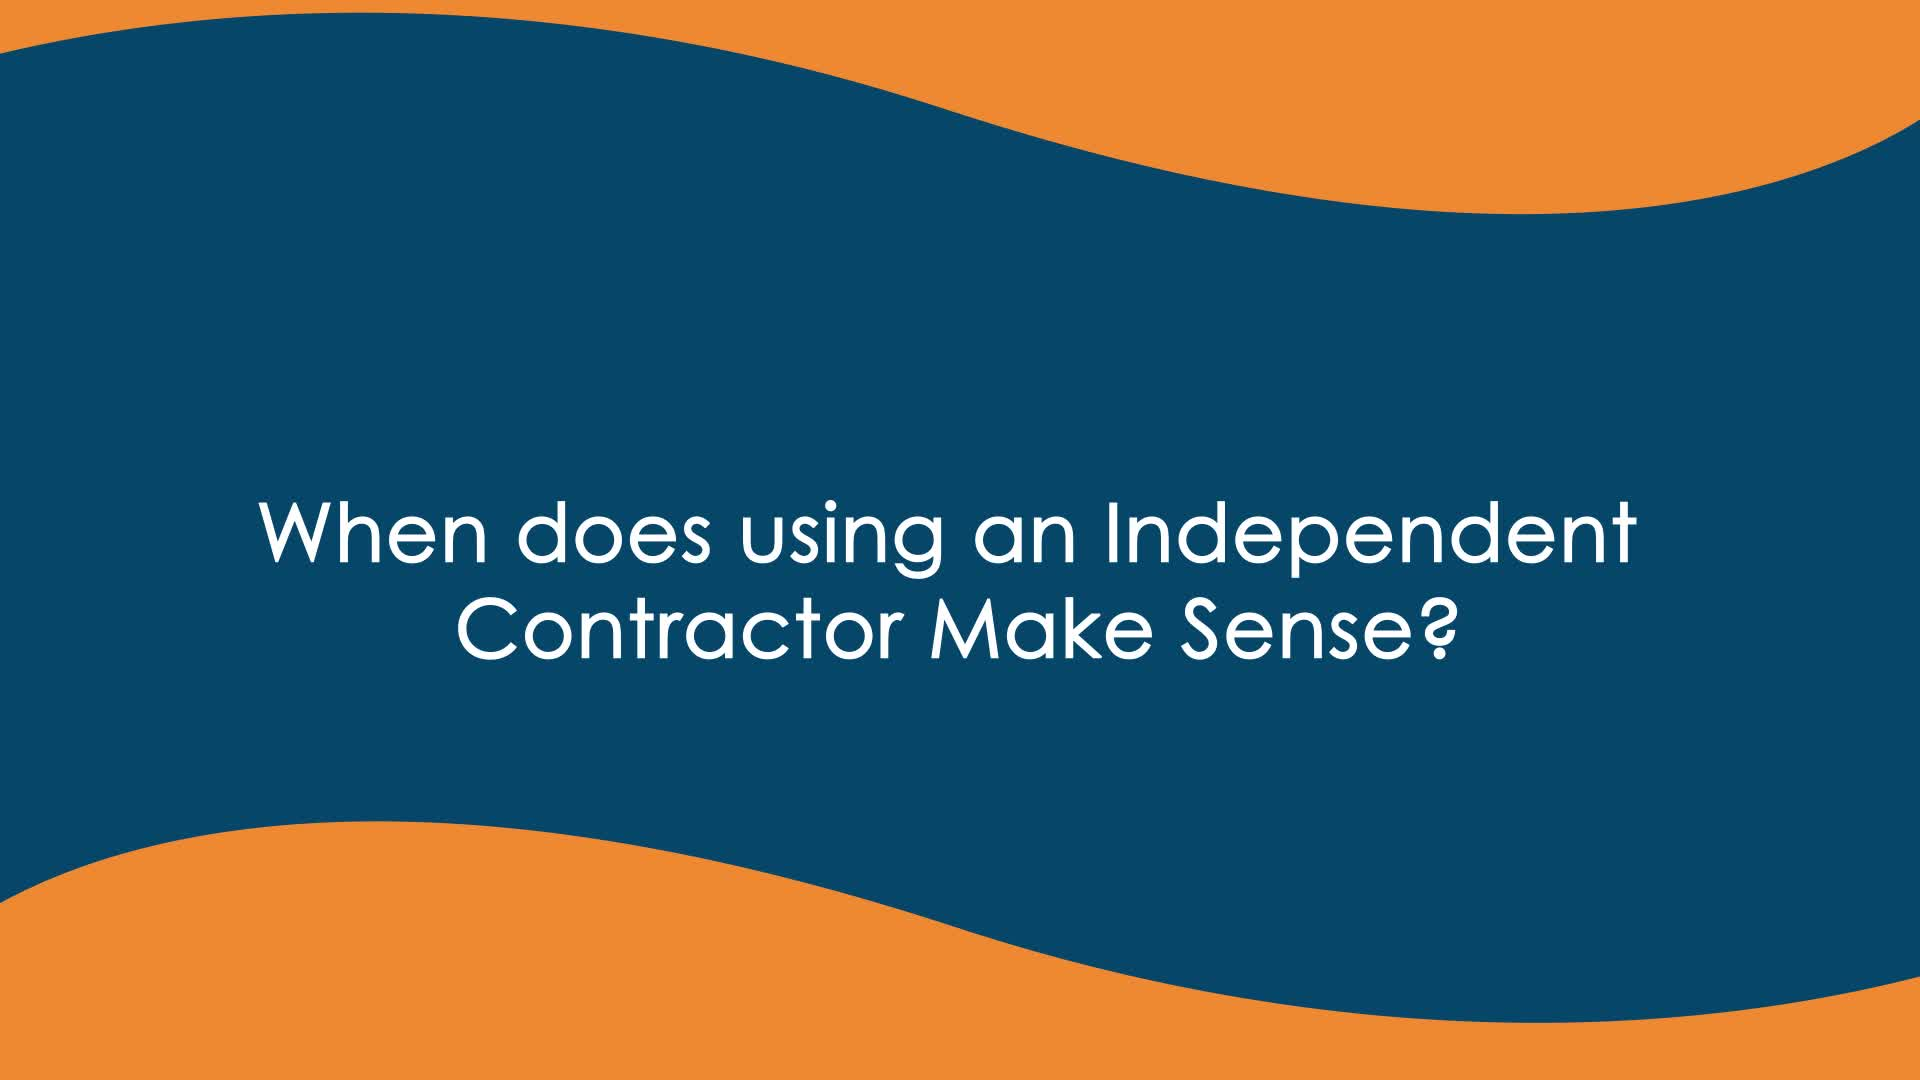 When does using a contractor make sense